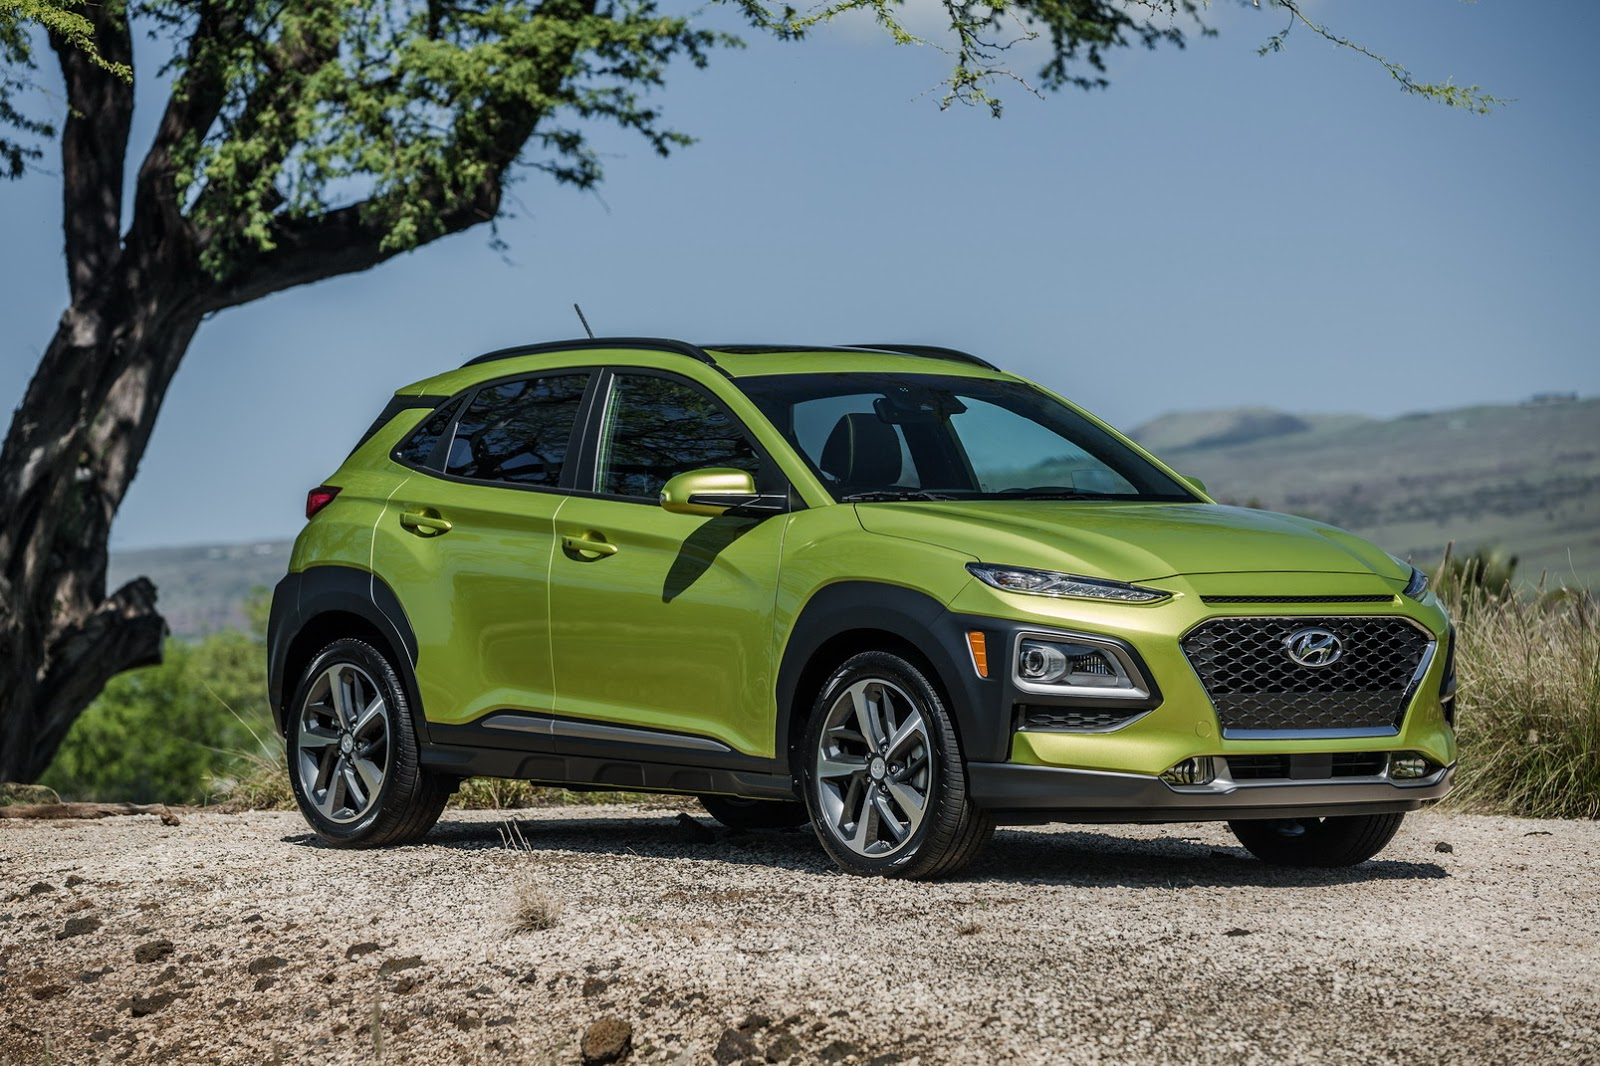 2018 hyundai kona wants to give nissan kicks a run for its money carscoops. Black Bedroom Furniture Sets. Home Design Ideas